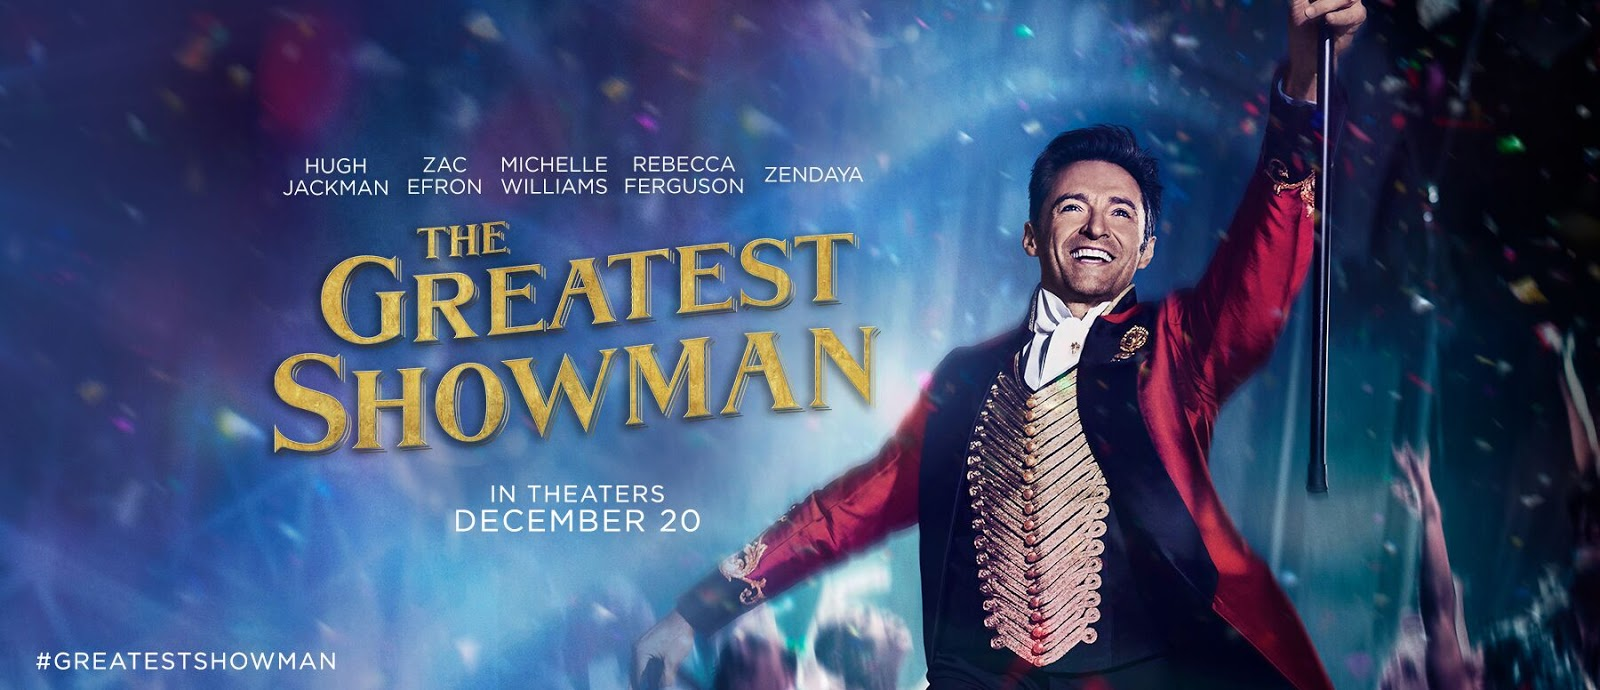 The Greatest Showman: A Review